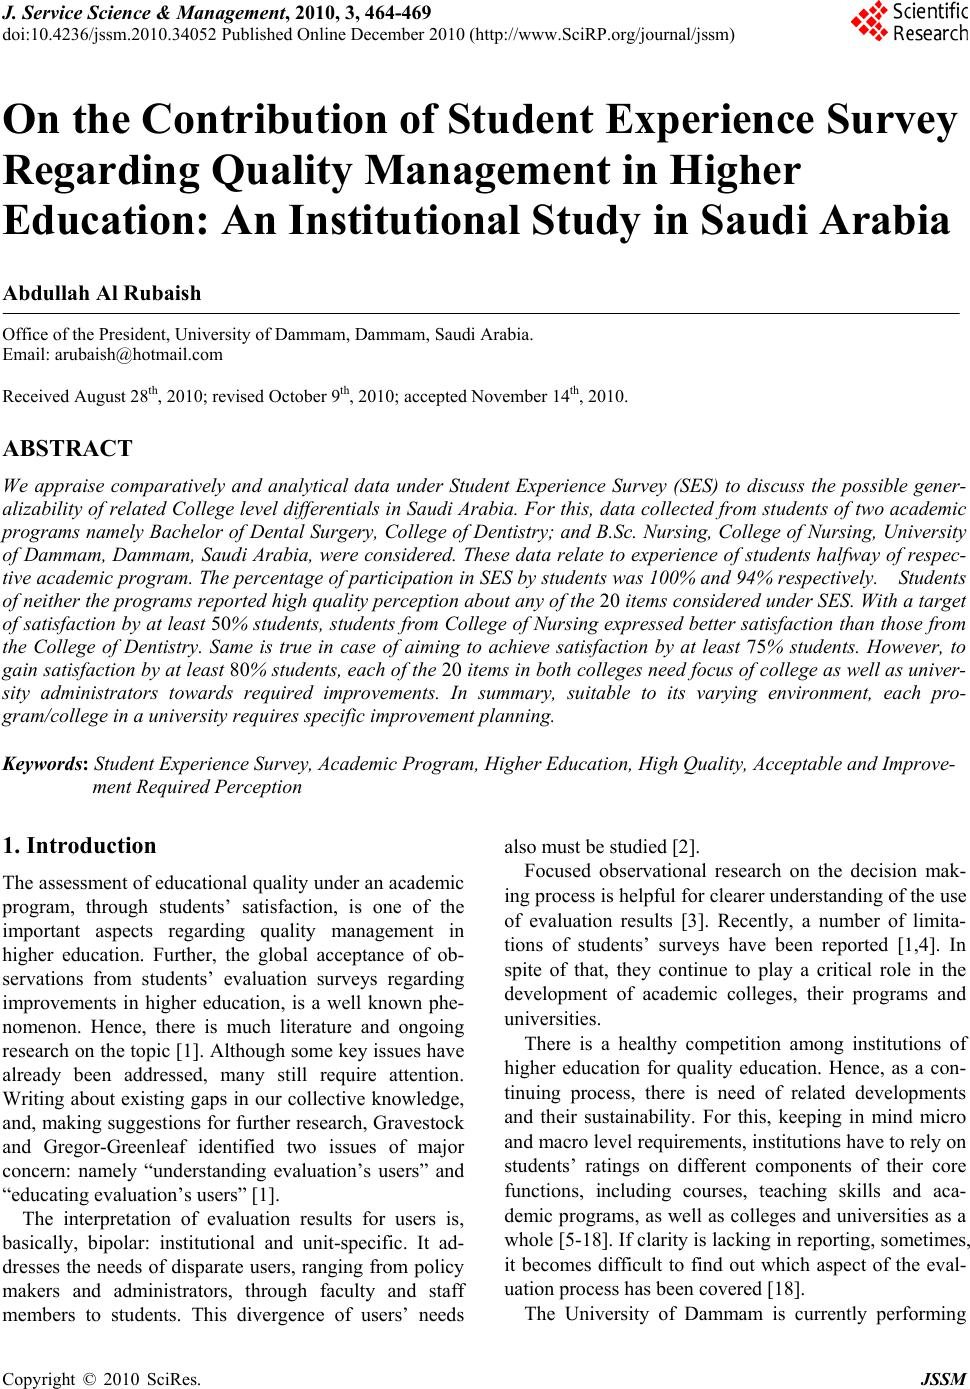 How To Write A College Essay Paper On The Contribution Of Student Experience Survey Regarding Quality  Management In Higher Education An Institutional Study In Saudi Arabia Thesis Statement Generator For Compare And Contrast Essay also How To Write Science Essay On The Contribution Of Student Experience Survey Regarding Quality  A Level English Essay